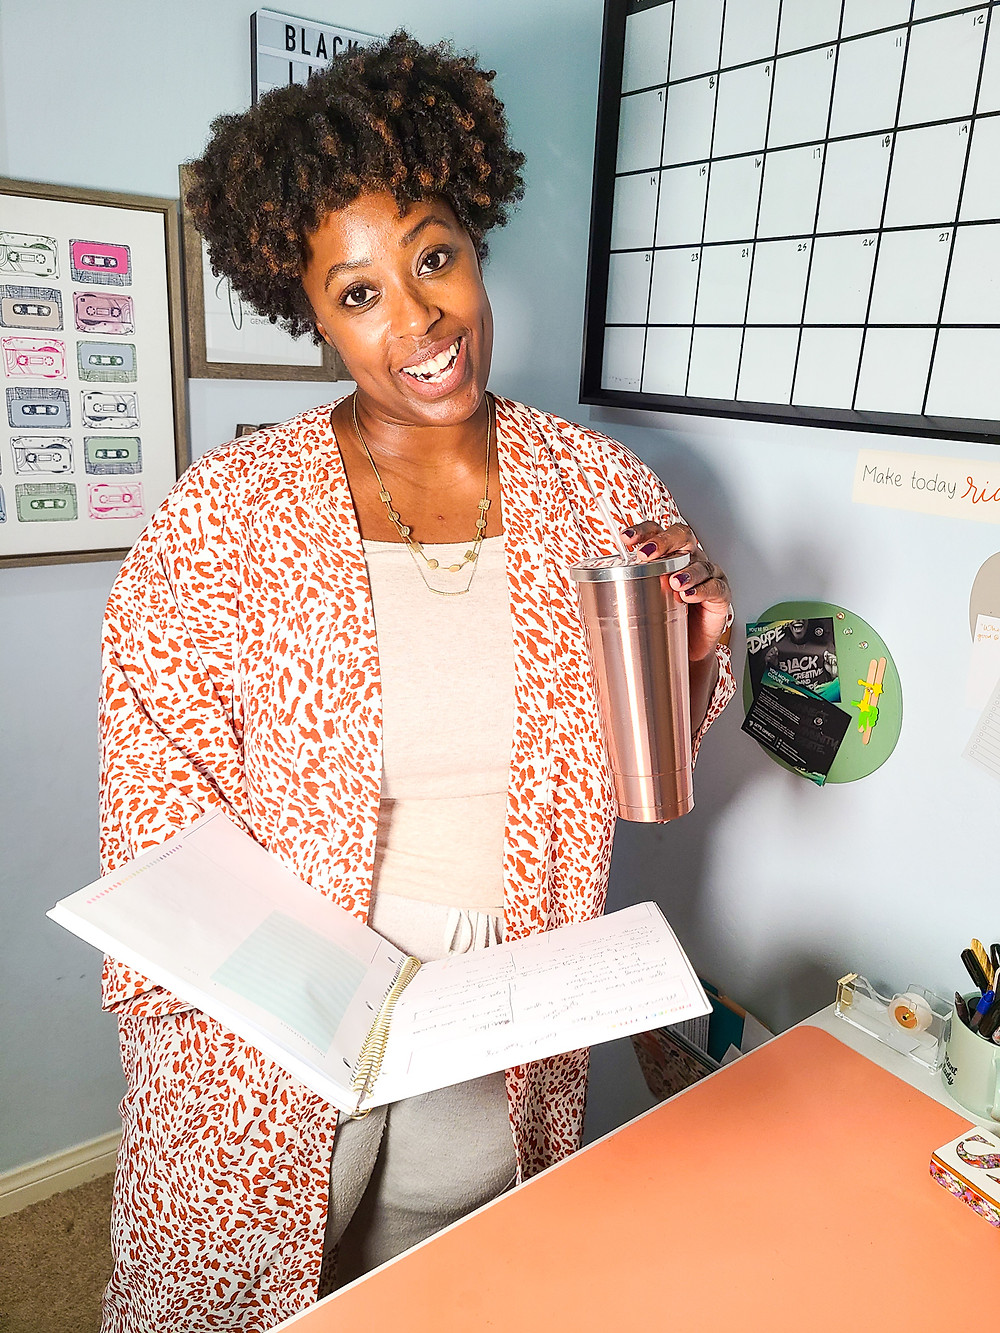 Working in home office. Shanell Tyus. Black xennial mom. Millennial mom. Naturalista. Curly-haired mom. Tapered cut. Cozy home office. Work from home mom. Mompreneur. Finding your passion. Black woman standing in from of desk smily while holding a tumbler cup in left hand and an open planner in her right hand. Curly hair and taperd cut, ivory colored shirt and pants, gold necklace, and white and orange printed kimono. Black mompreneur.